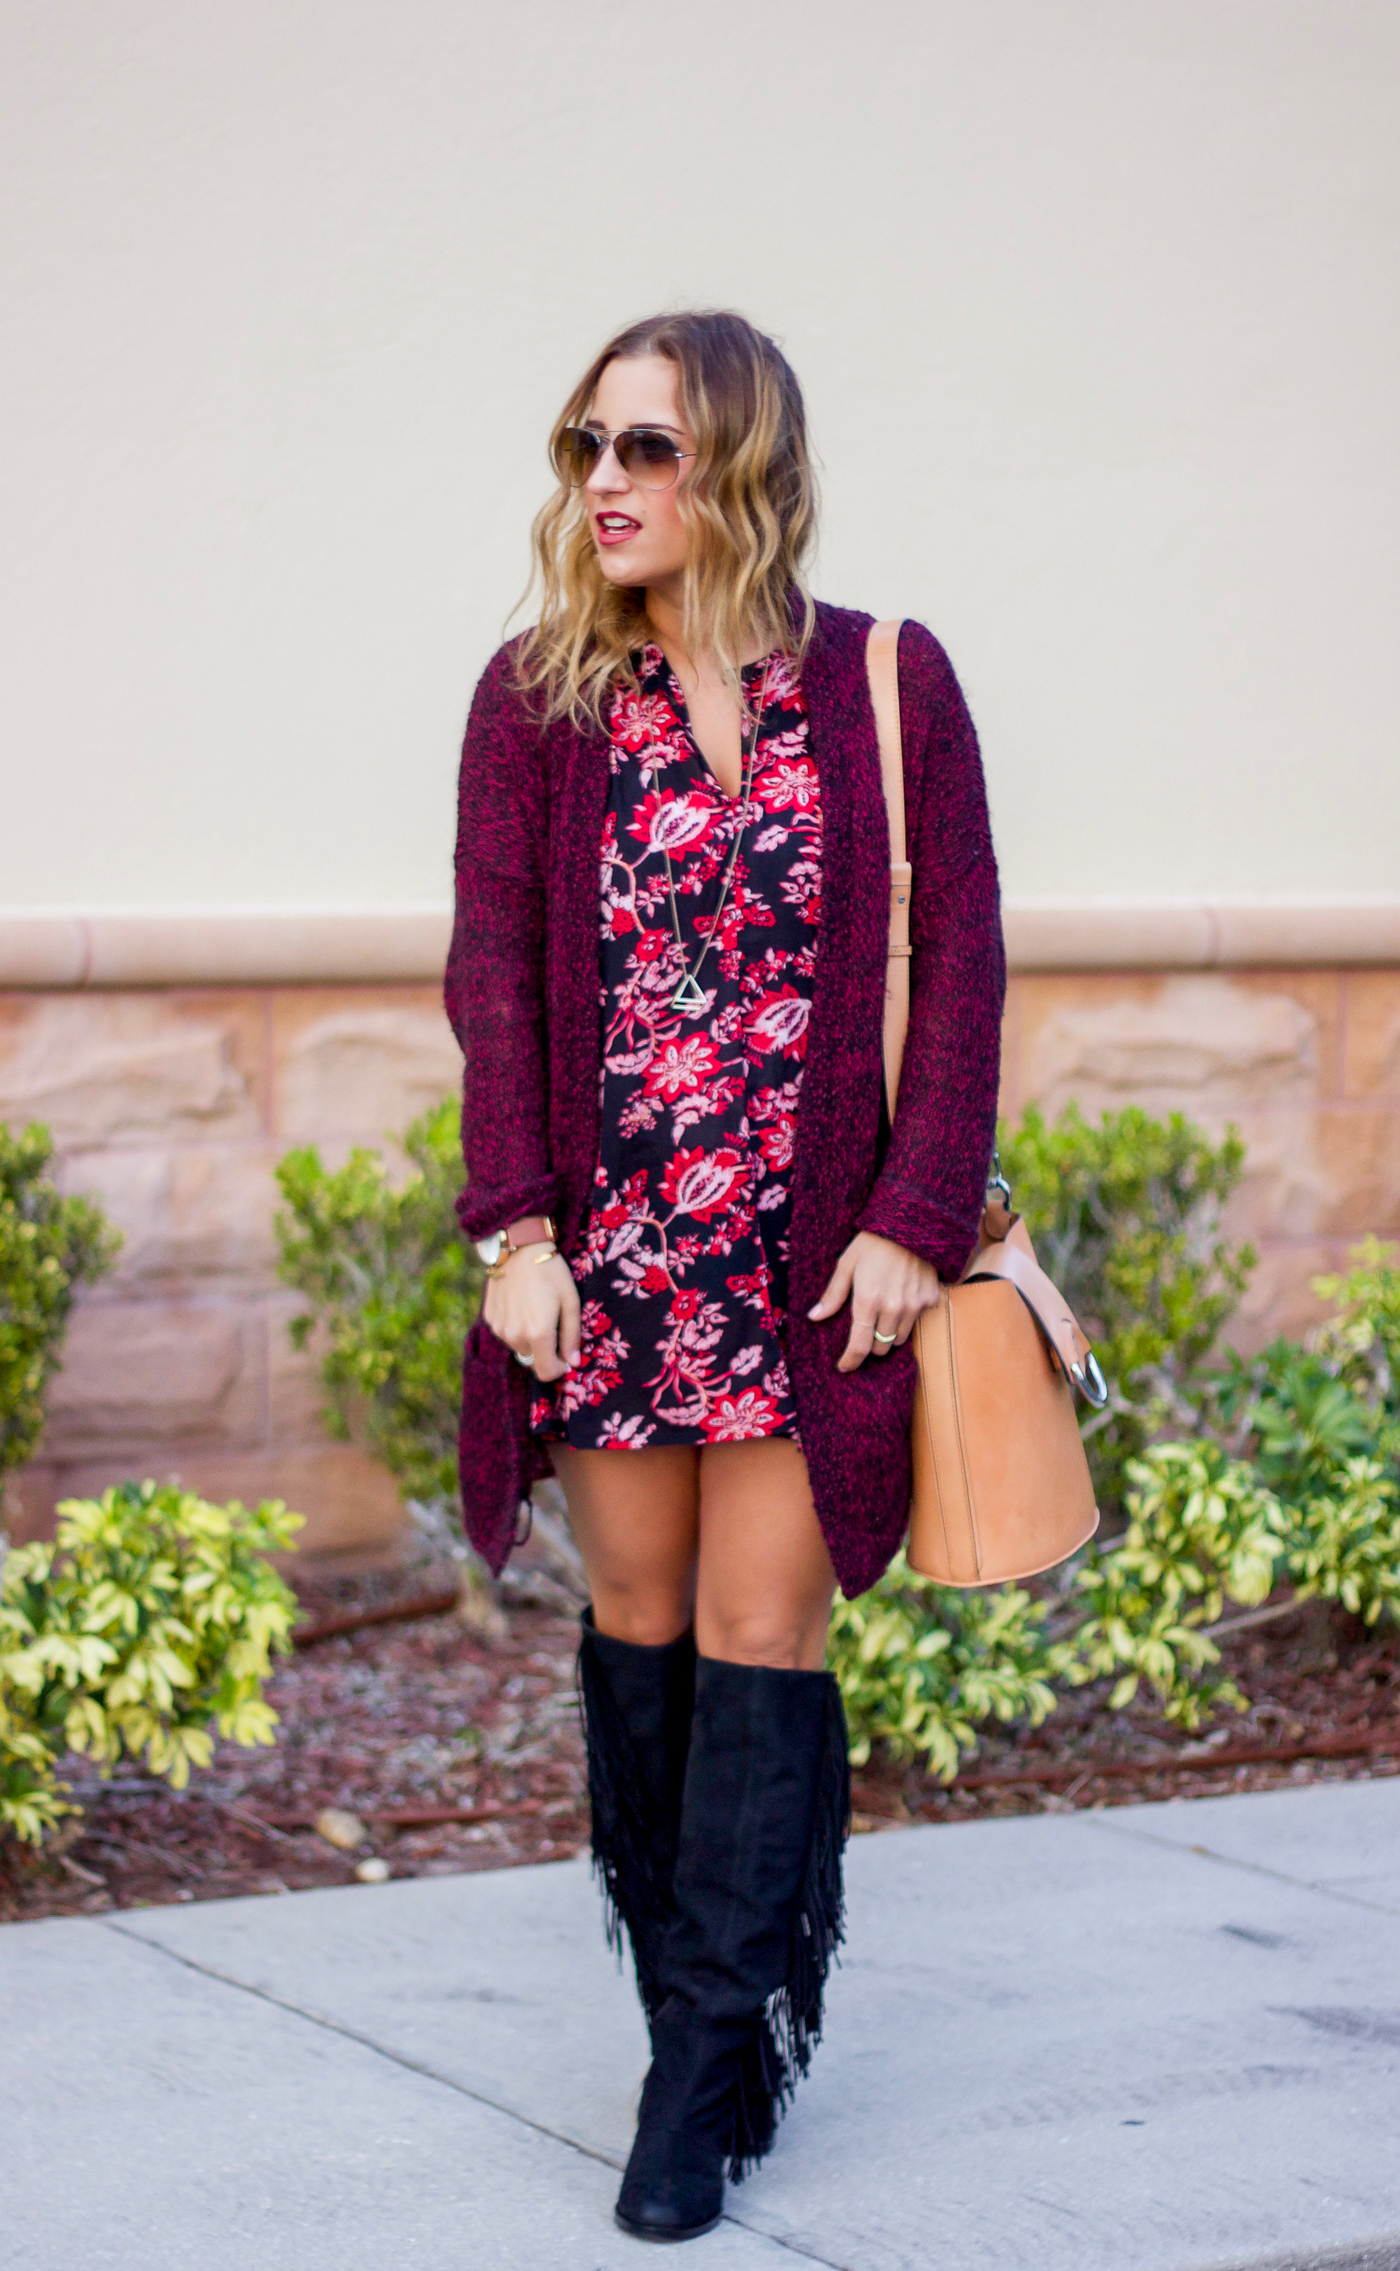 Canadian life and style blogger is wearing a dark floral dress with a cardigan from Aritzia on a trip to Florida